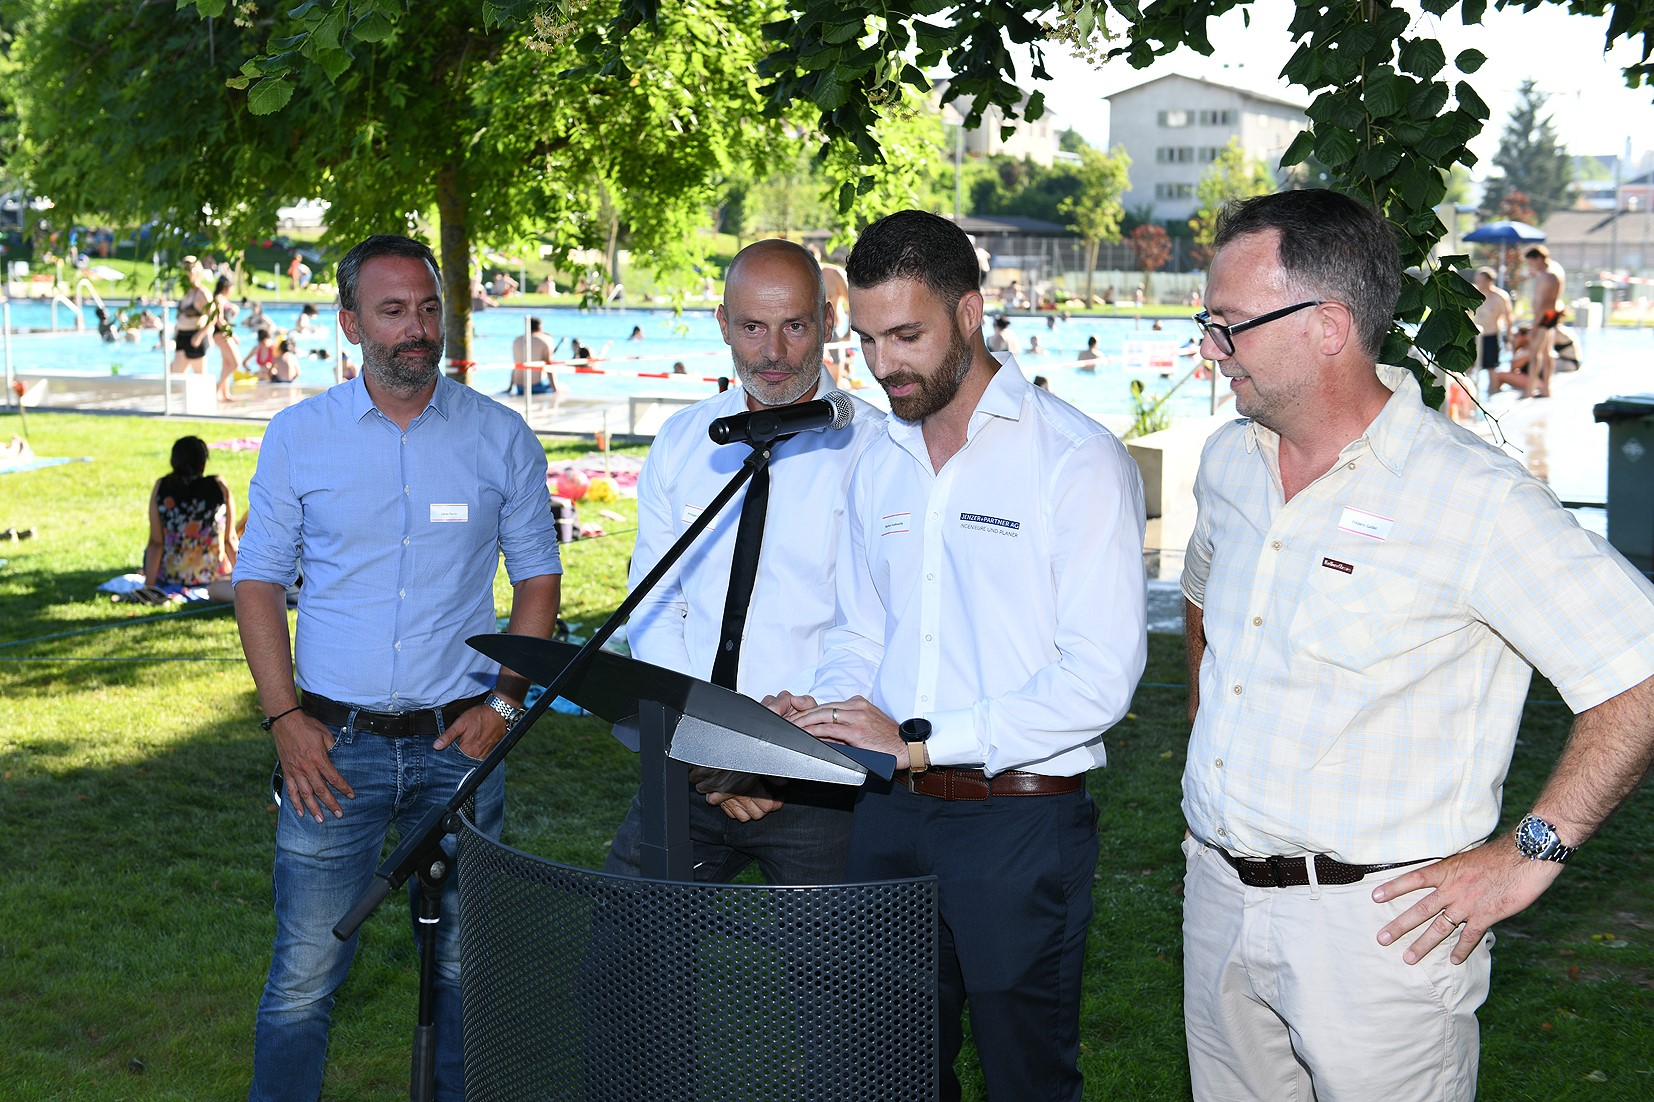 Piscine-municipale-inauguration-09